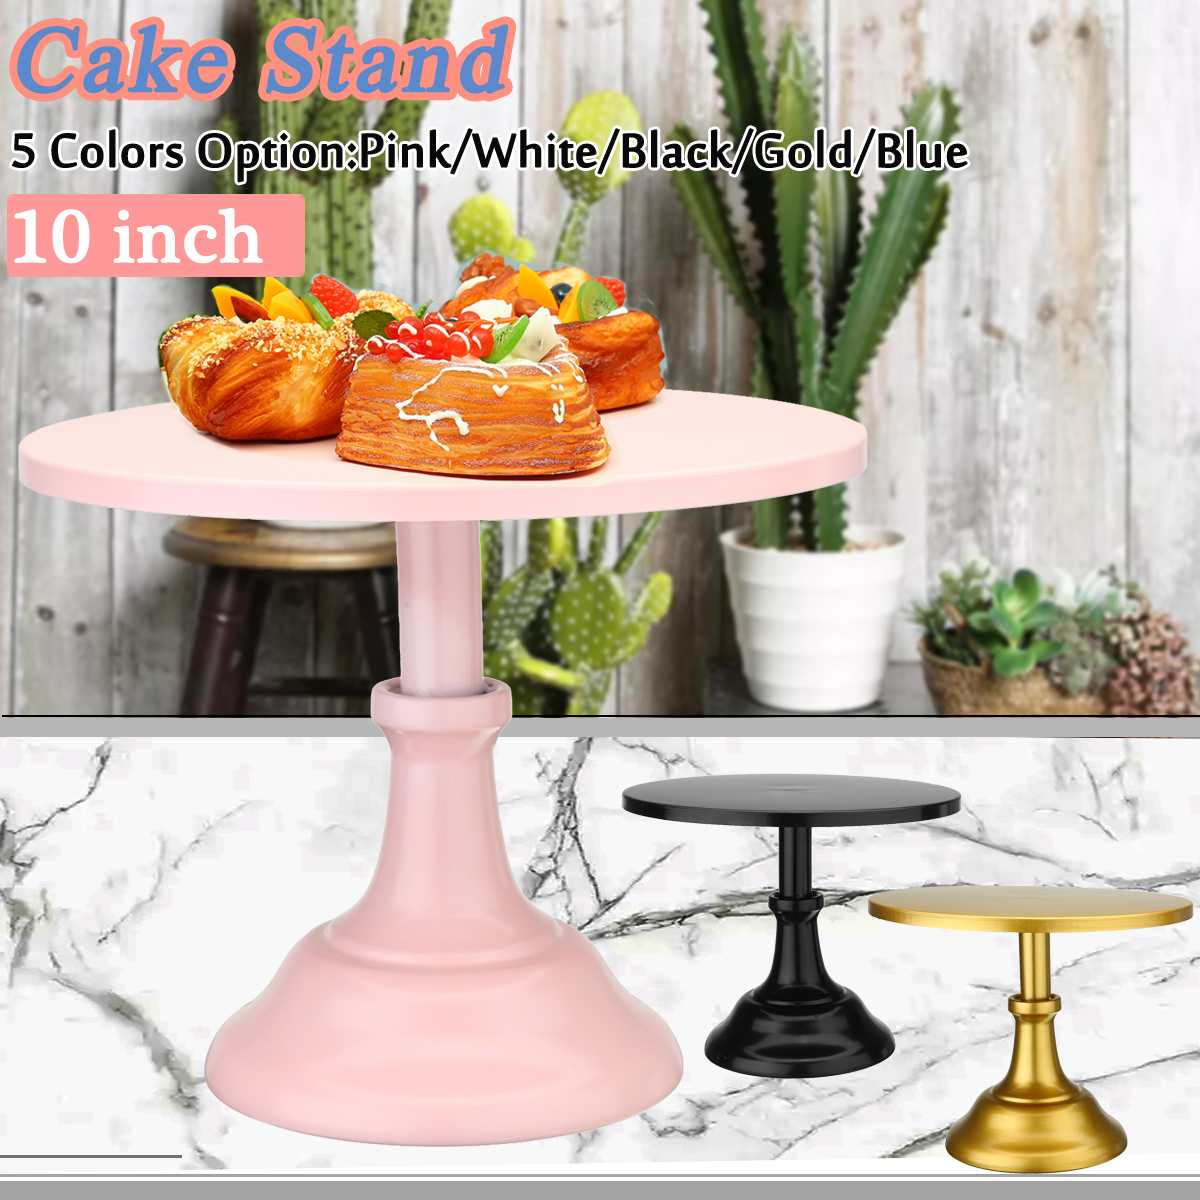 10 inch 5 Colors Grand baker cake stand wedding cake tools adjustable height fondant cake display accessory for party bakeware10 inch 5 Colors Grand baker cake stand wedding cake tools adjustable height fondant cake display accessory for party bakeware